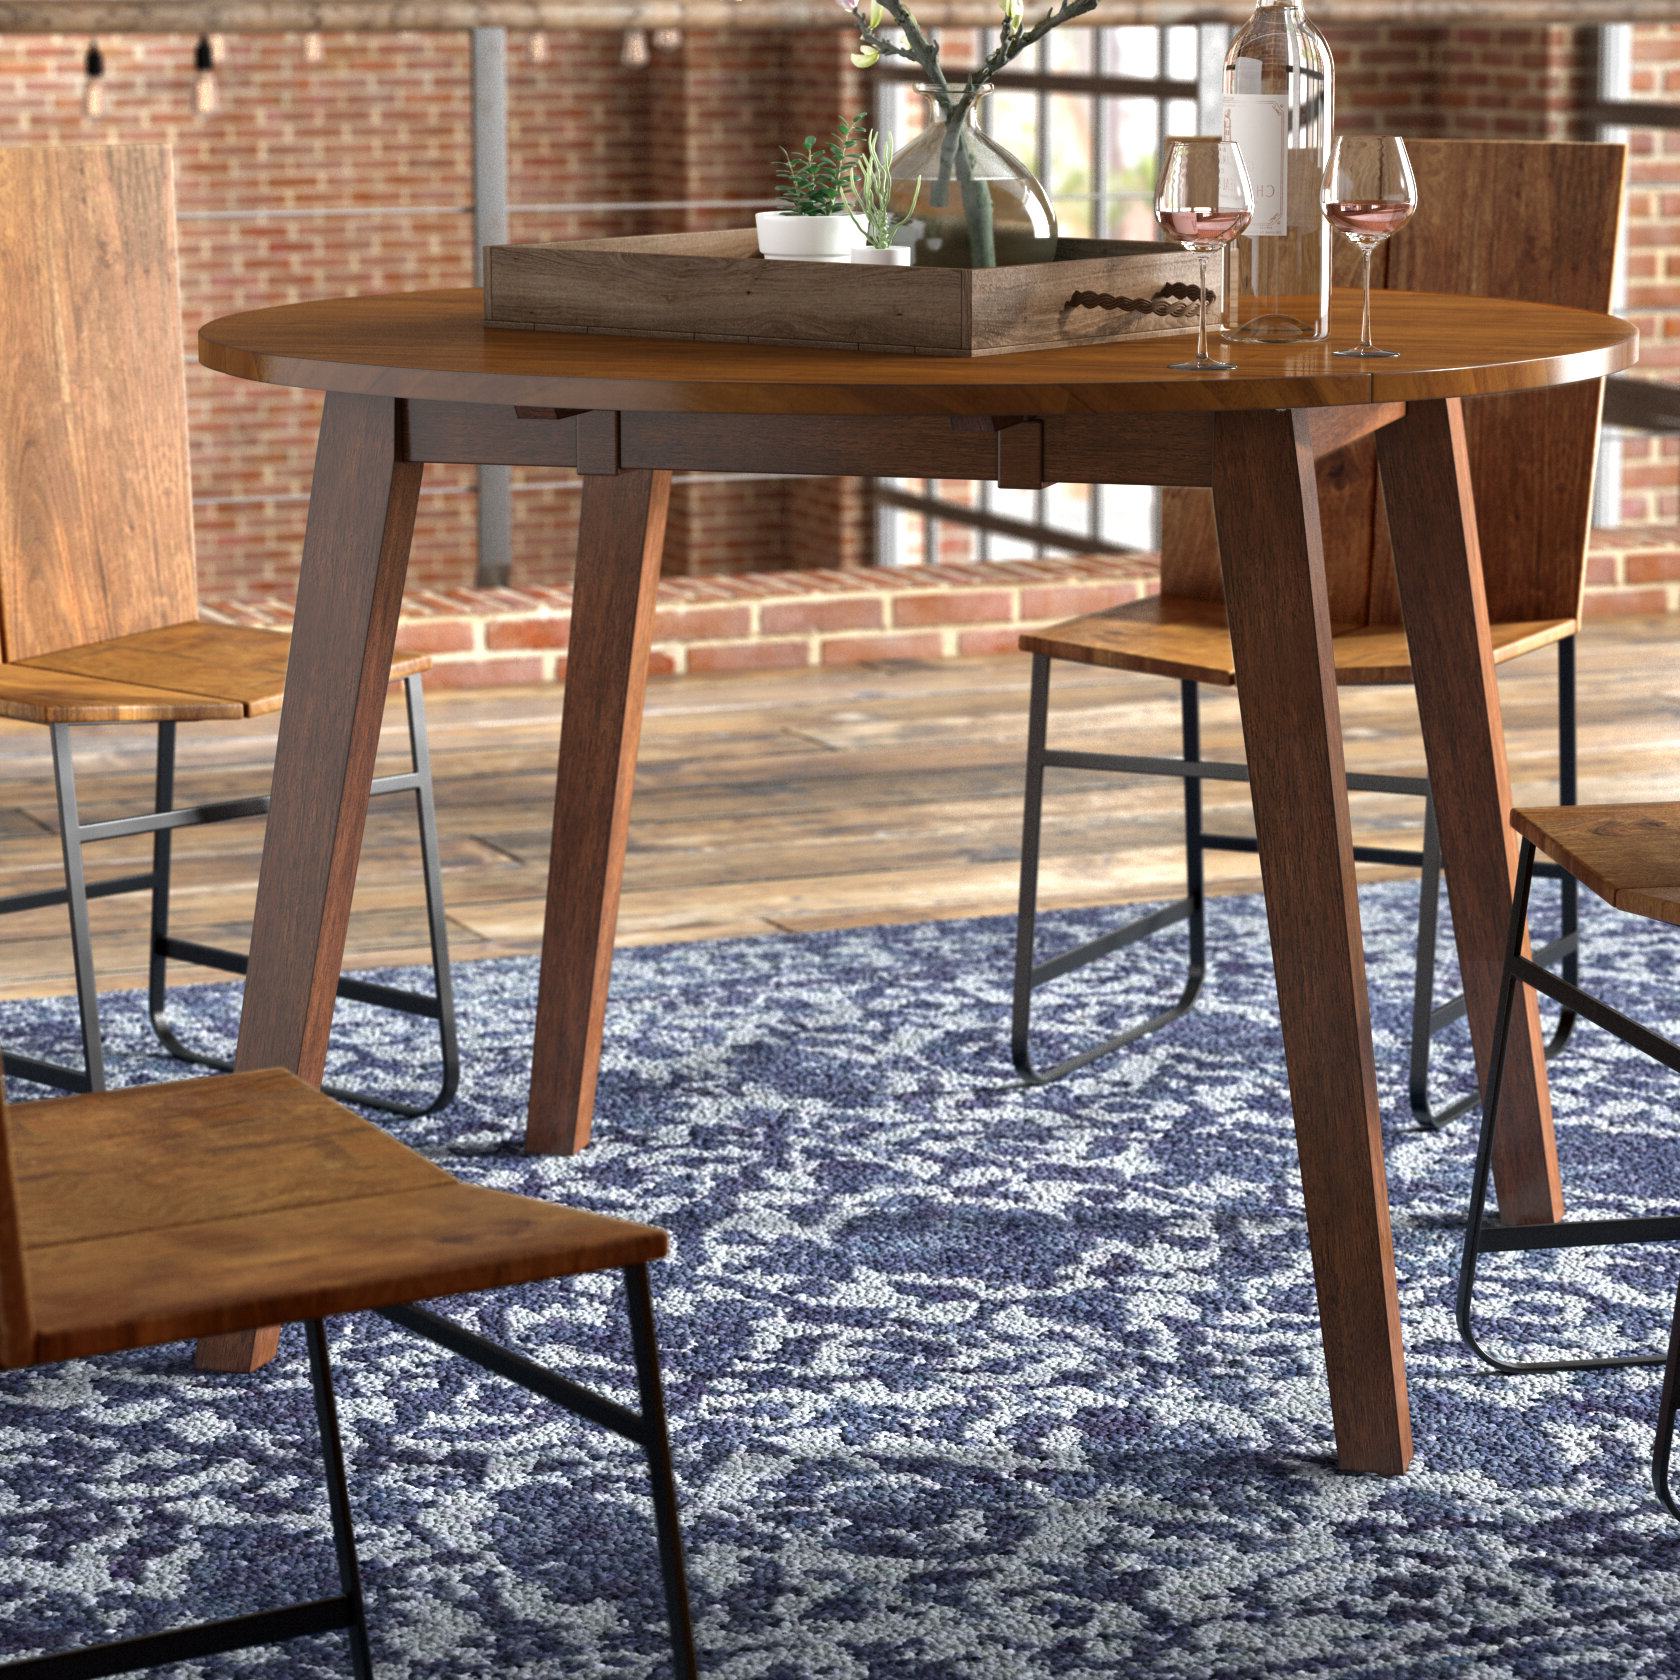 Trendy Transitional 4 Seating Double Drop Leaf Casual Dining Tables Intended For Trent Austin Design Caracara Round Dropleaf Extendable (Gallery 12 of 30)